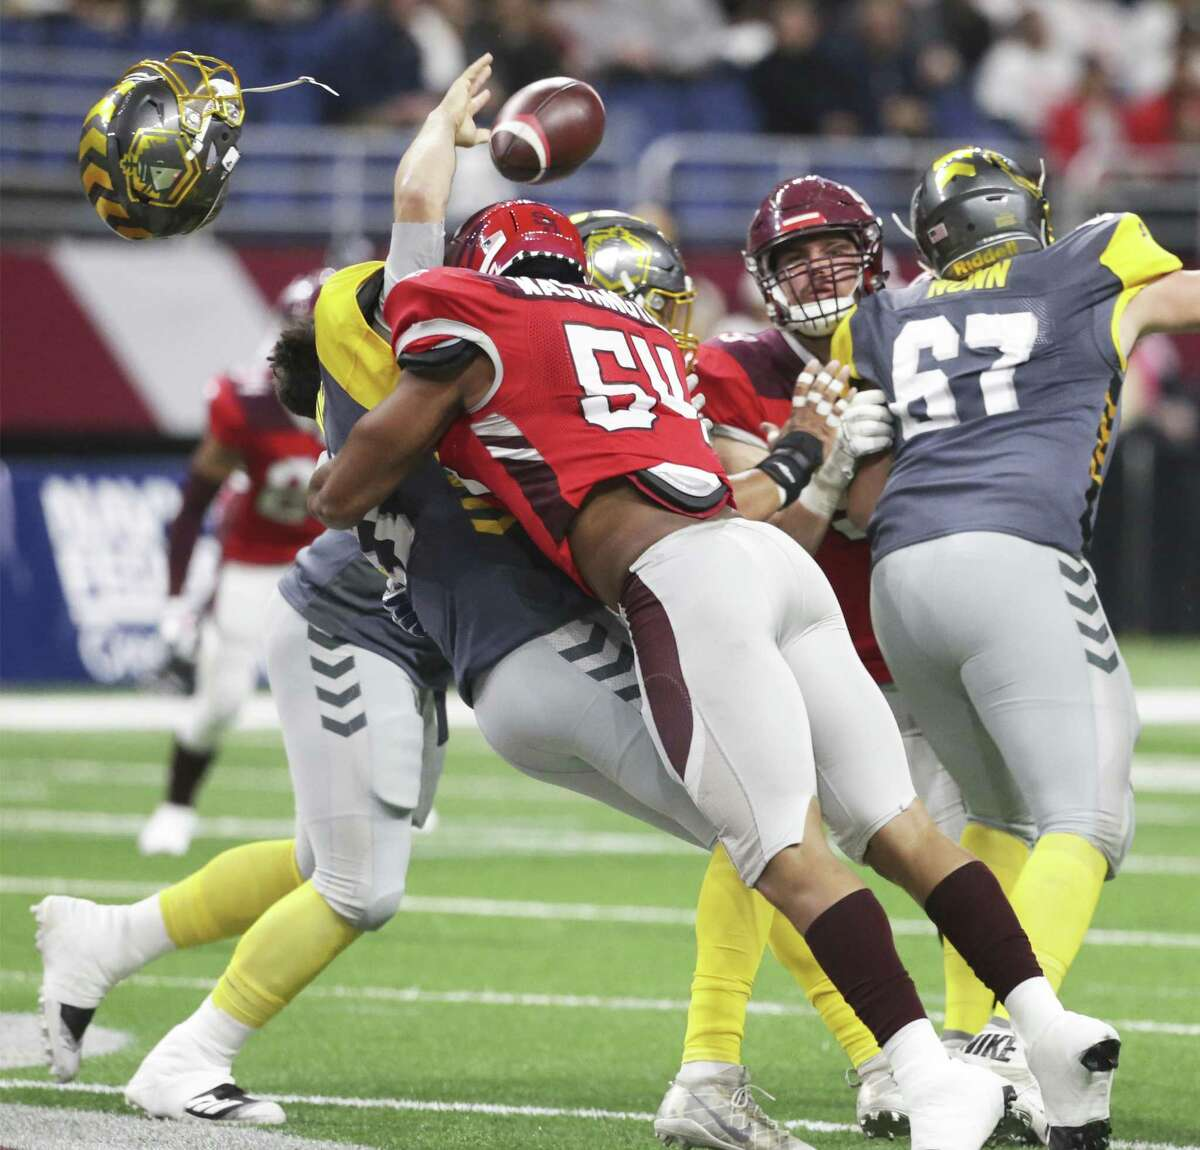 San Antonio linebacker Shaan Washinton knocks the helmet off of the Fleet quarterback Mike Bercovici as the Commanders host San Diego at the Alamodome in the opening game for the Alliance of American Football league in 2019. AAF players filed a class-action lawsuit seeking to recover allegedly unpaid wages.